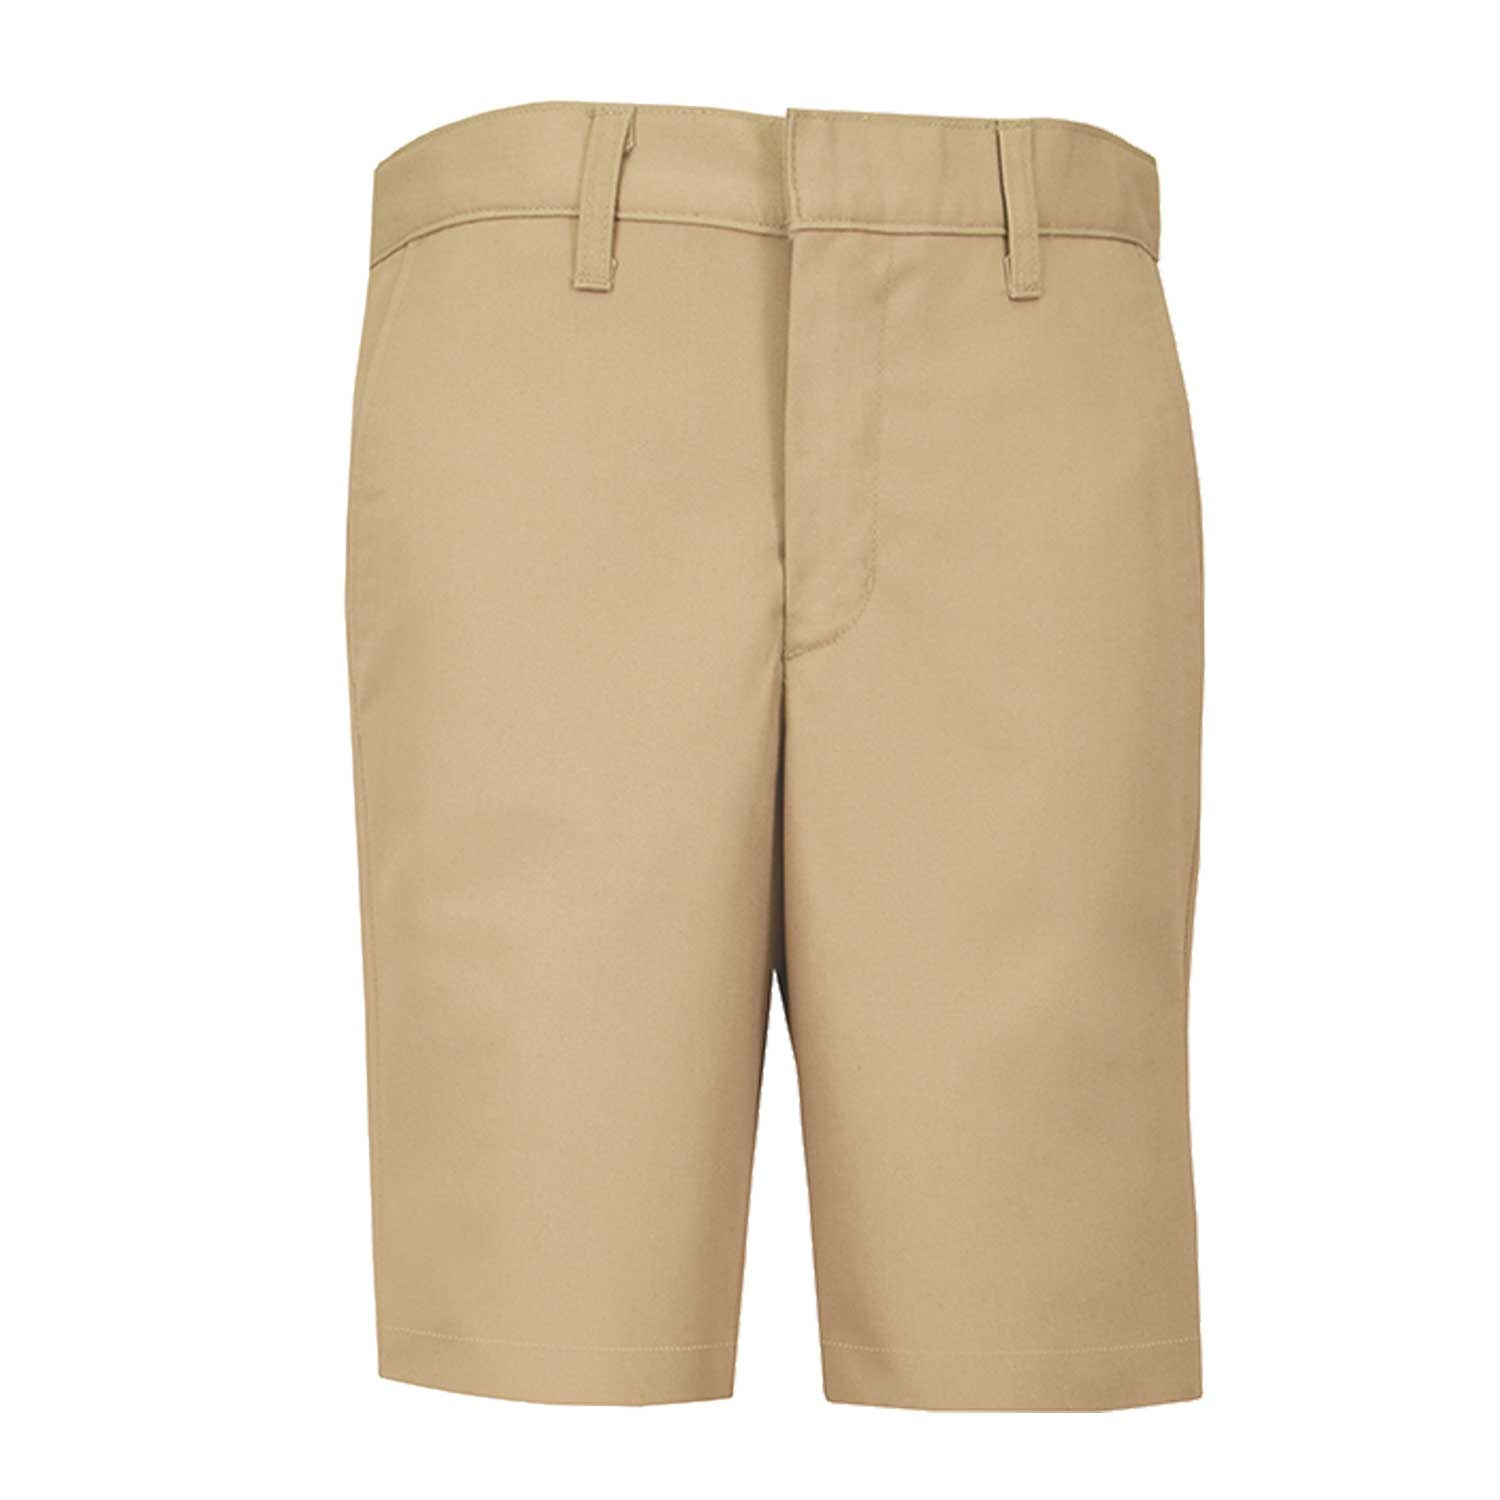 Cantwell Mens Shorts